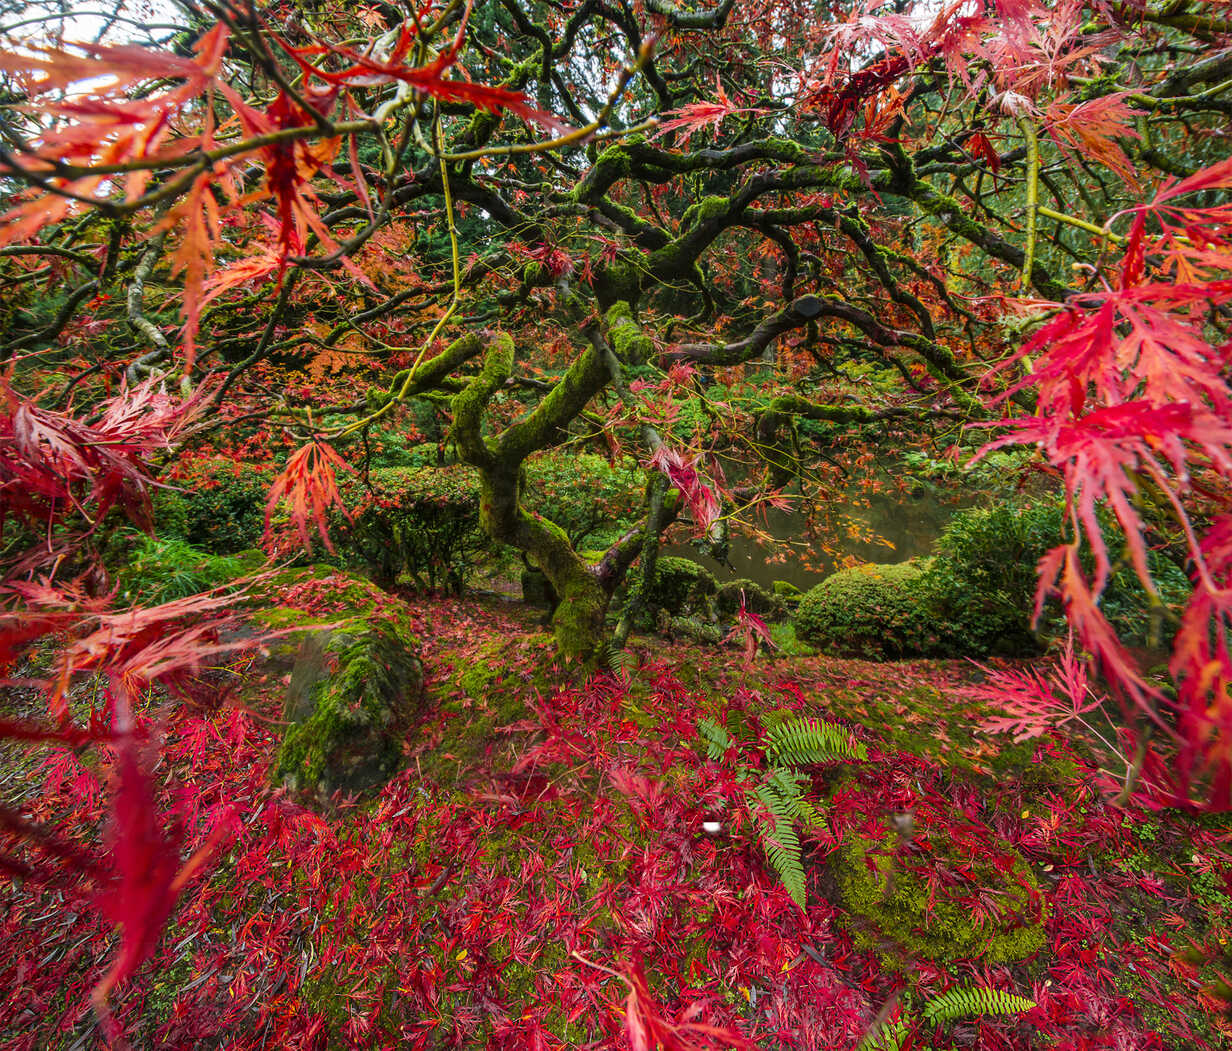 High angle view of Japanese Maple at garden - CAVF38685 - Cavan Images/Westend61